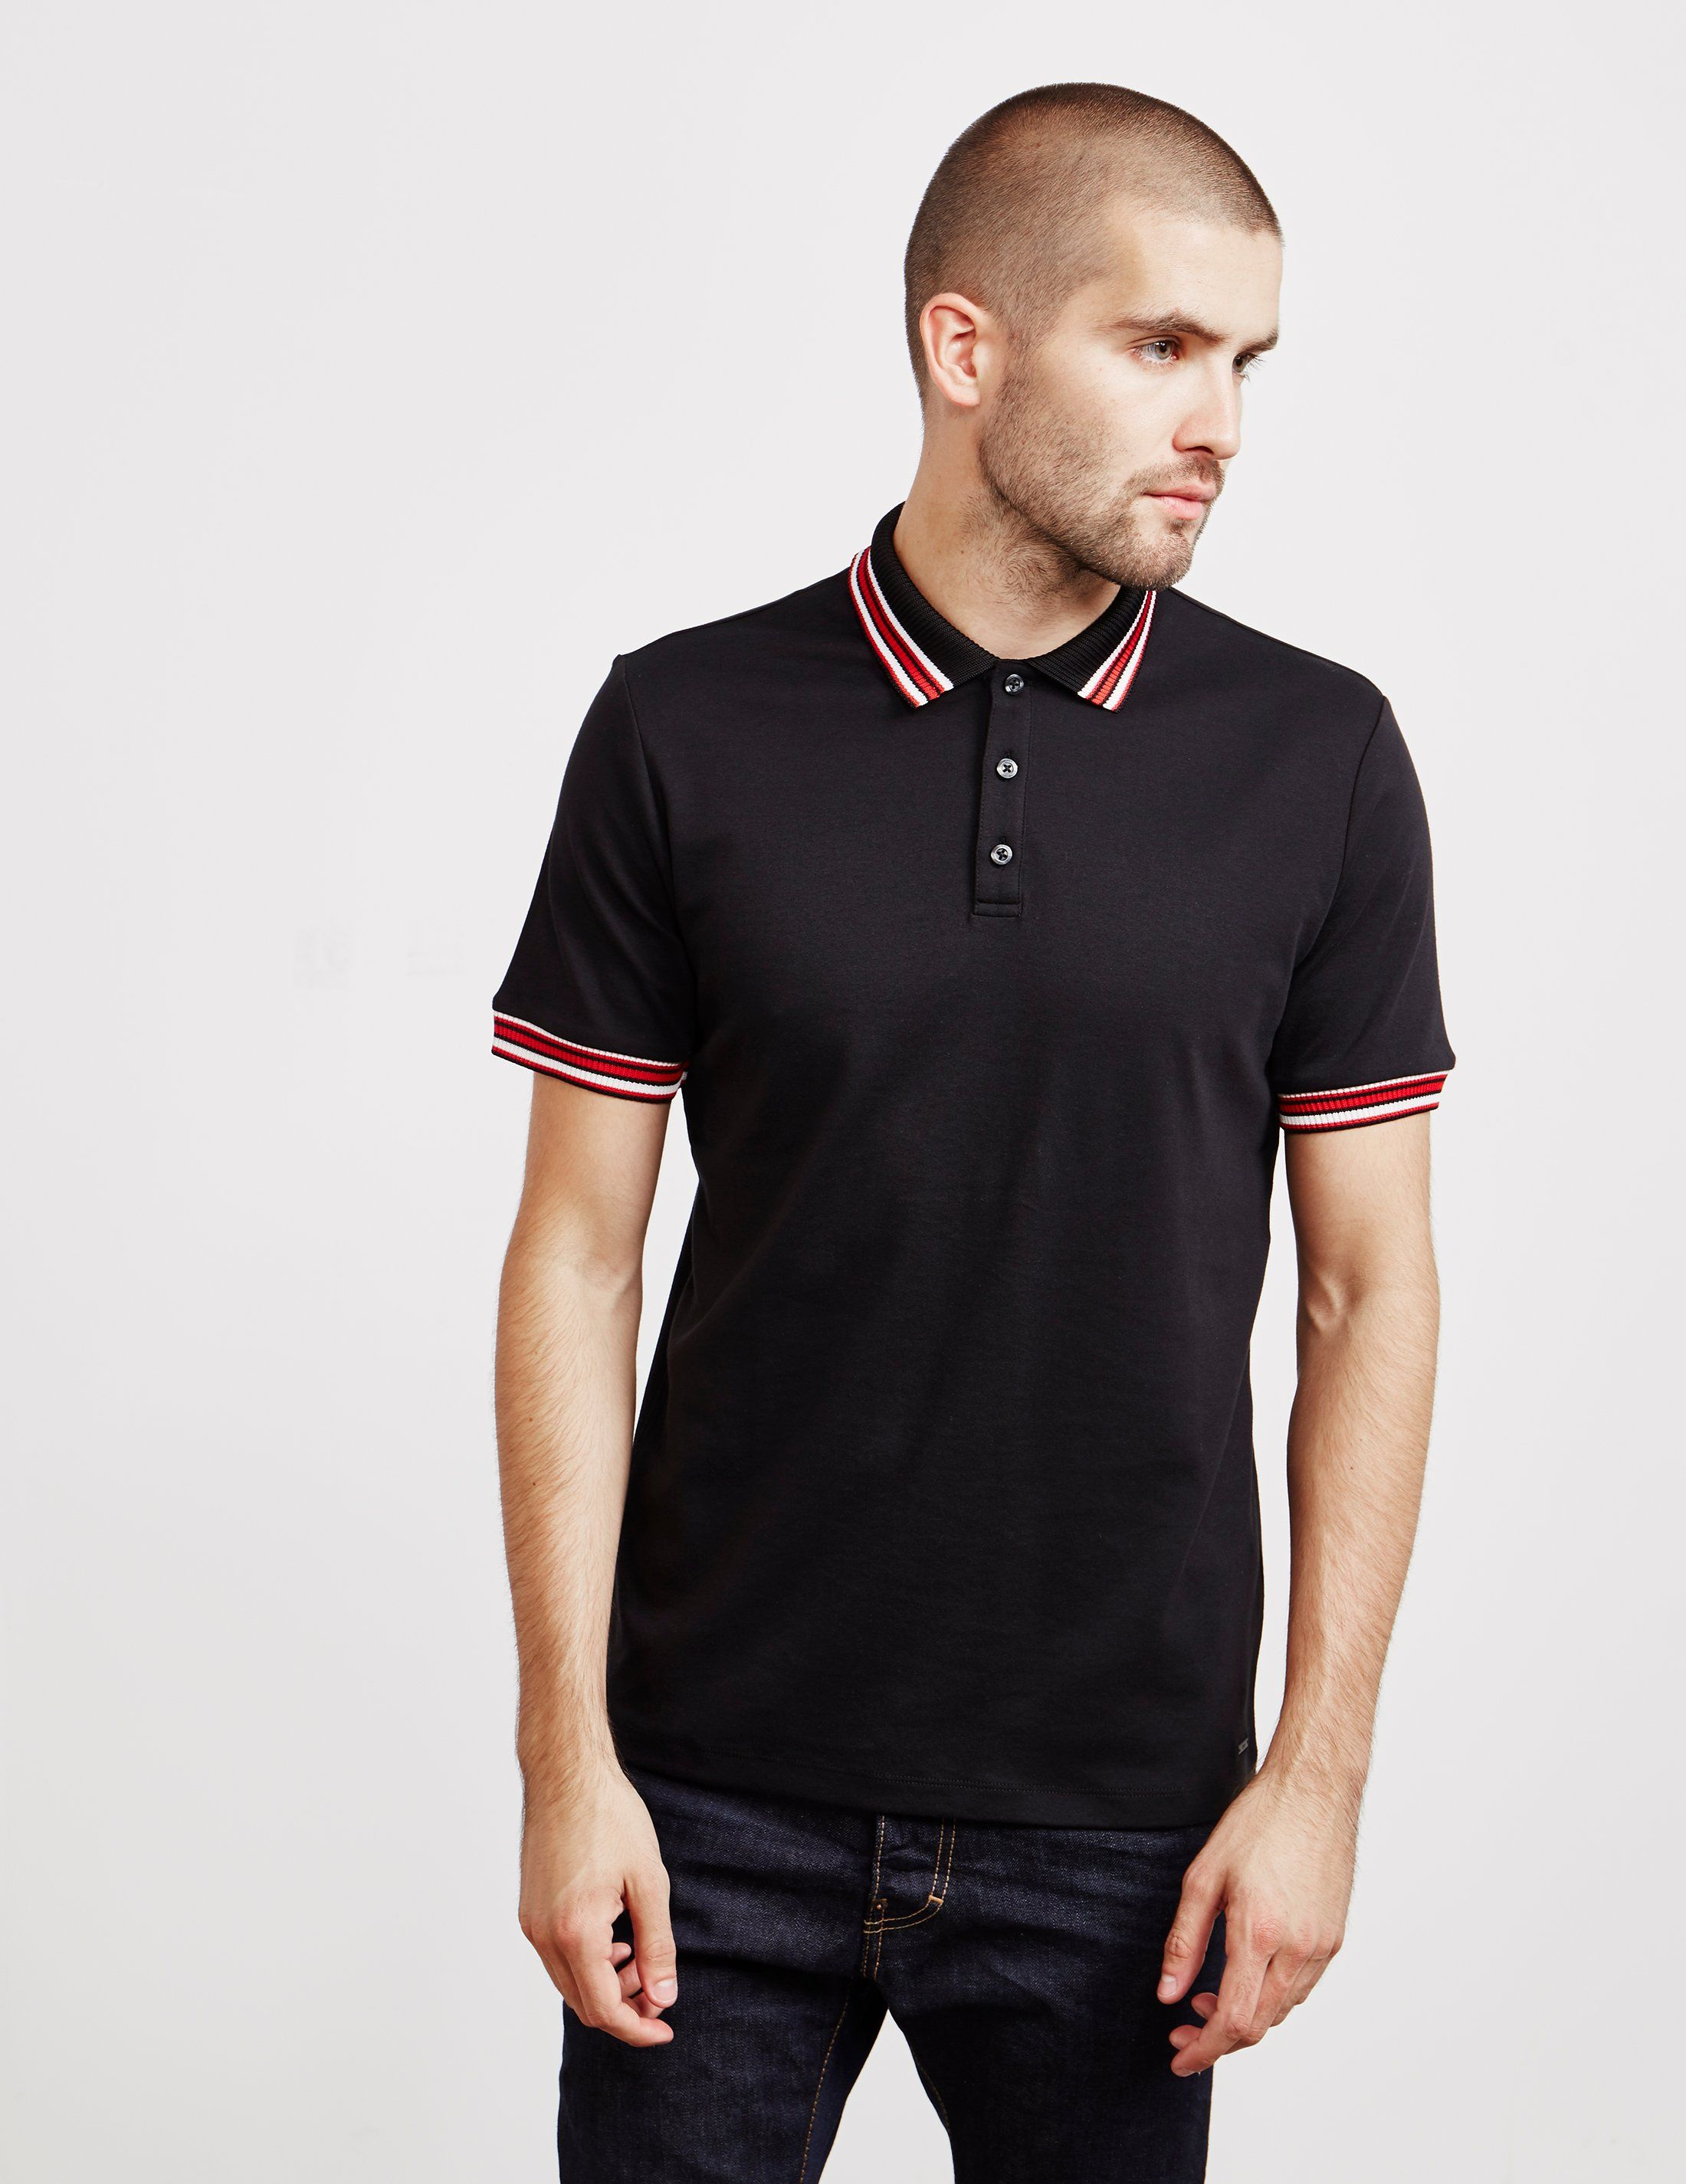 HUGO Tipping Short Sleeve Polo Shirt - Online Exclusive